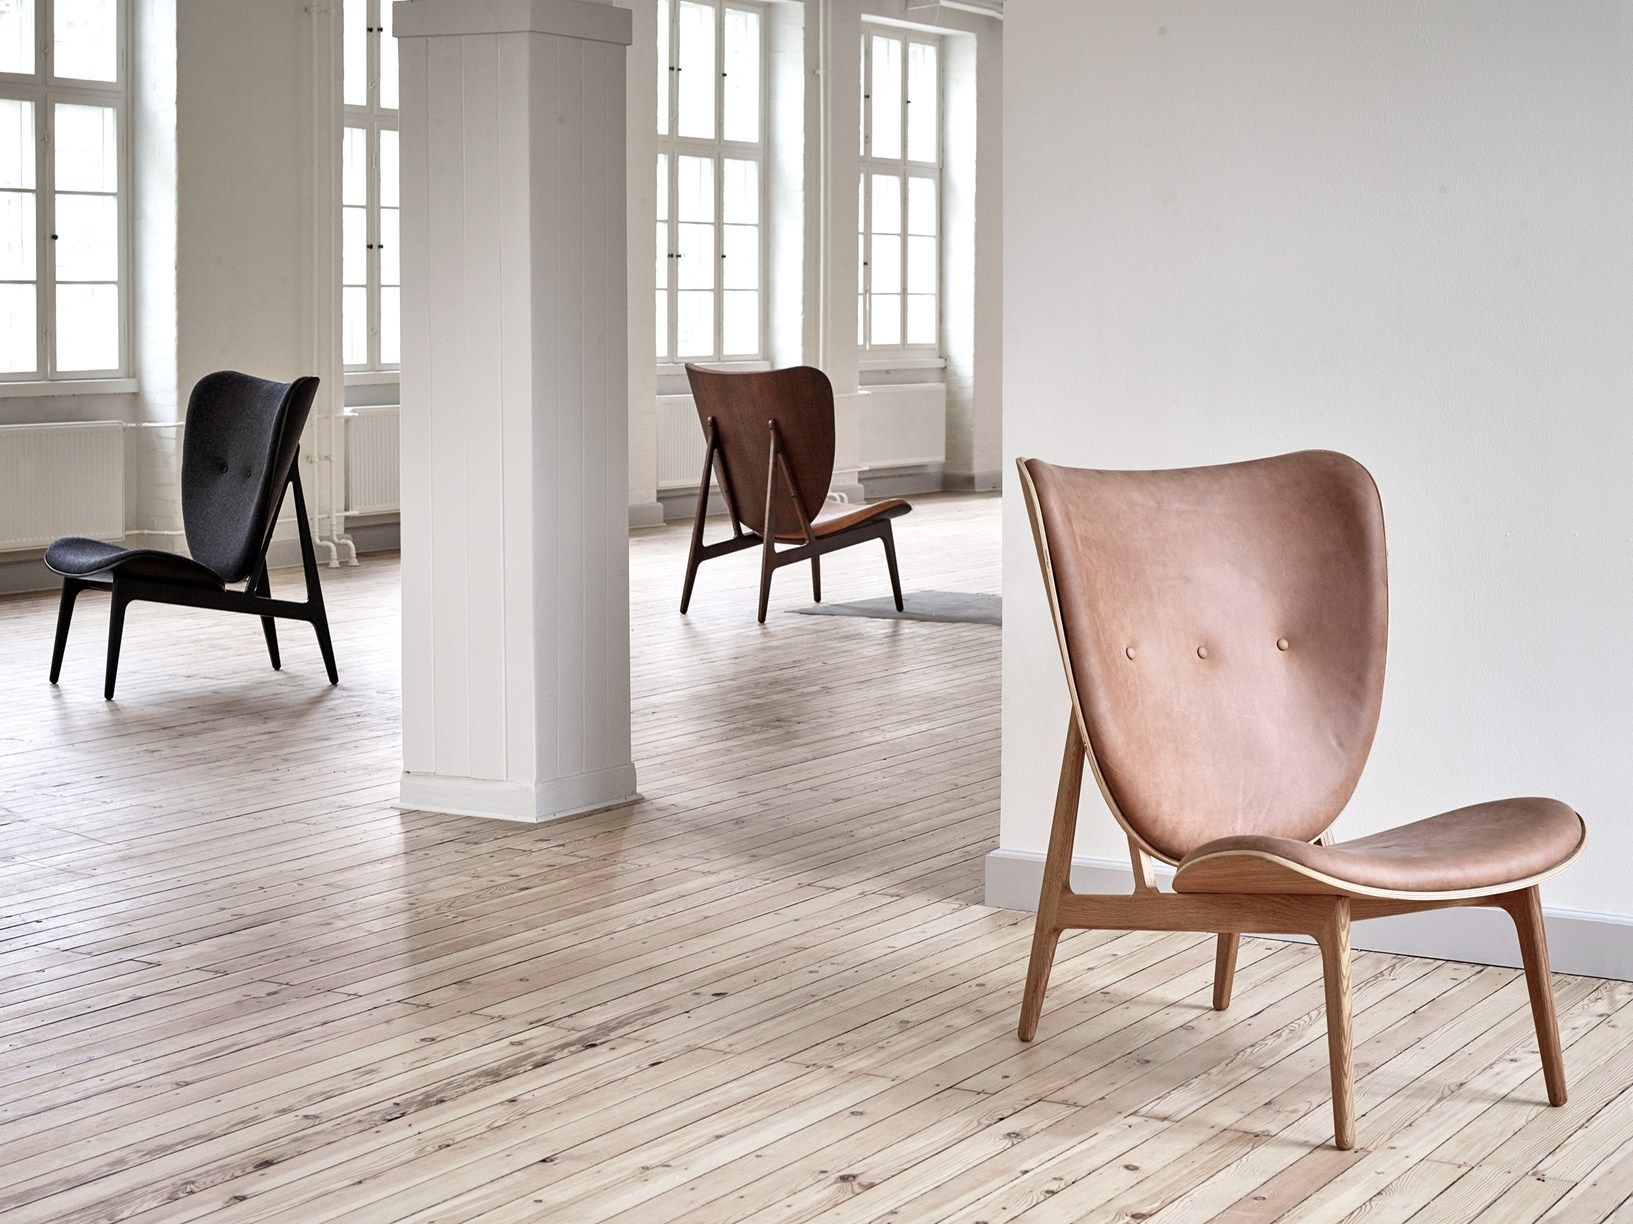 Chair Japanese aesthetic meets Scandinavian design